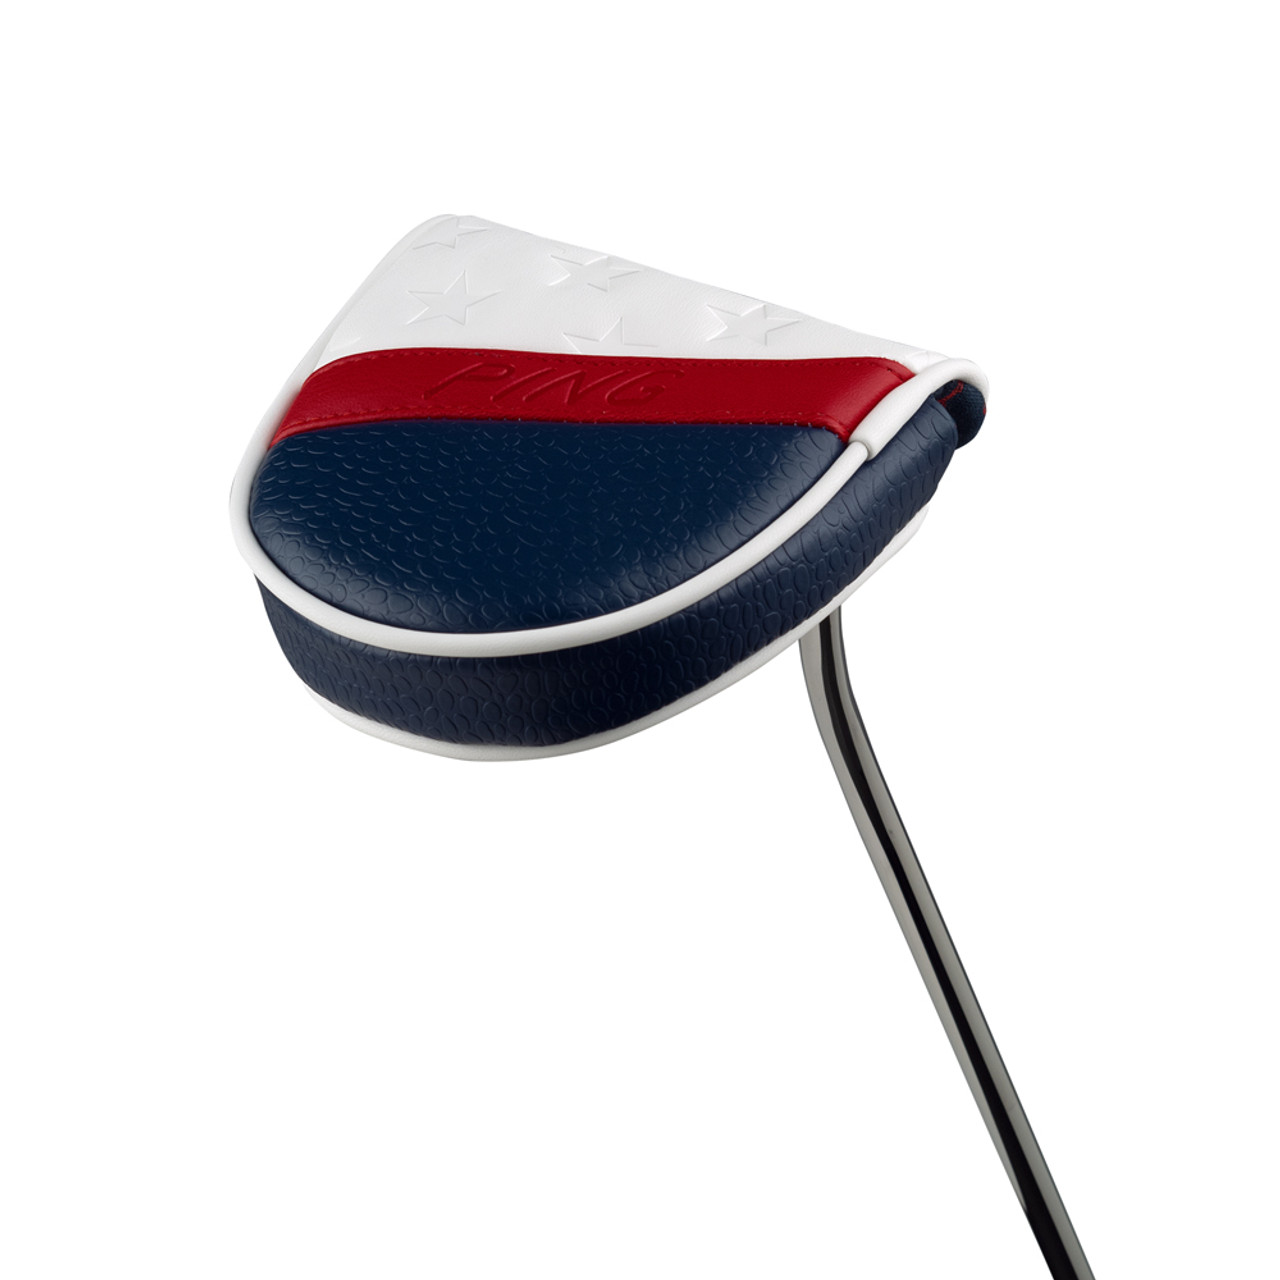 PING Stars & Stripes Putter Headcovers - Mallet